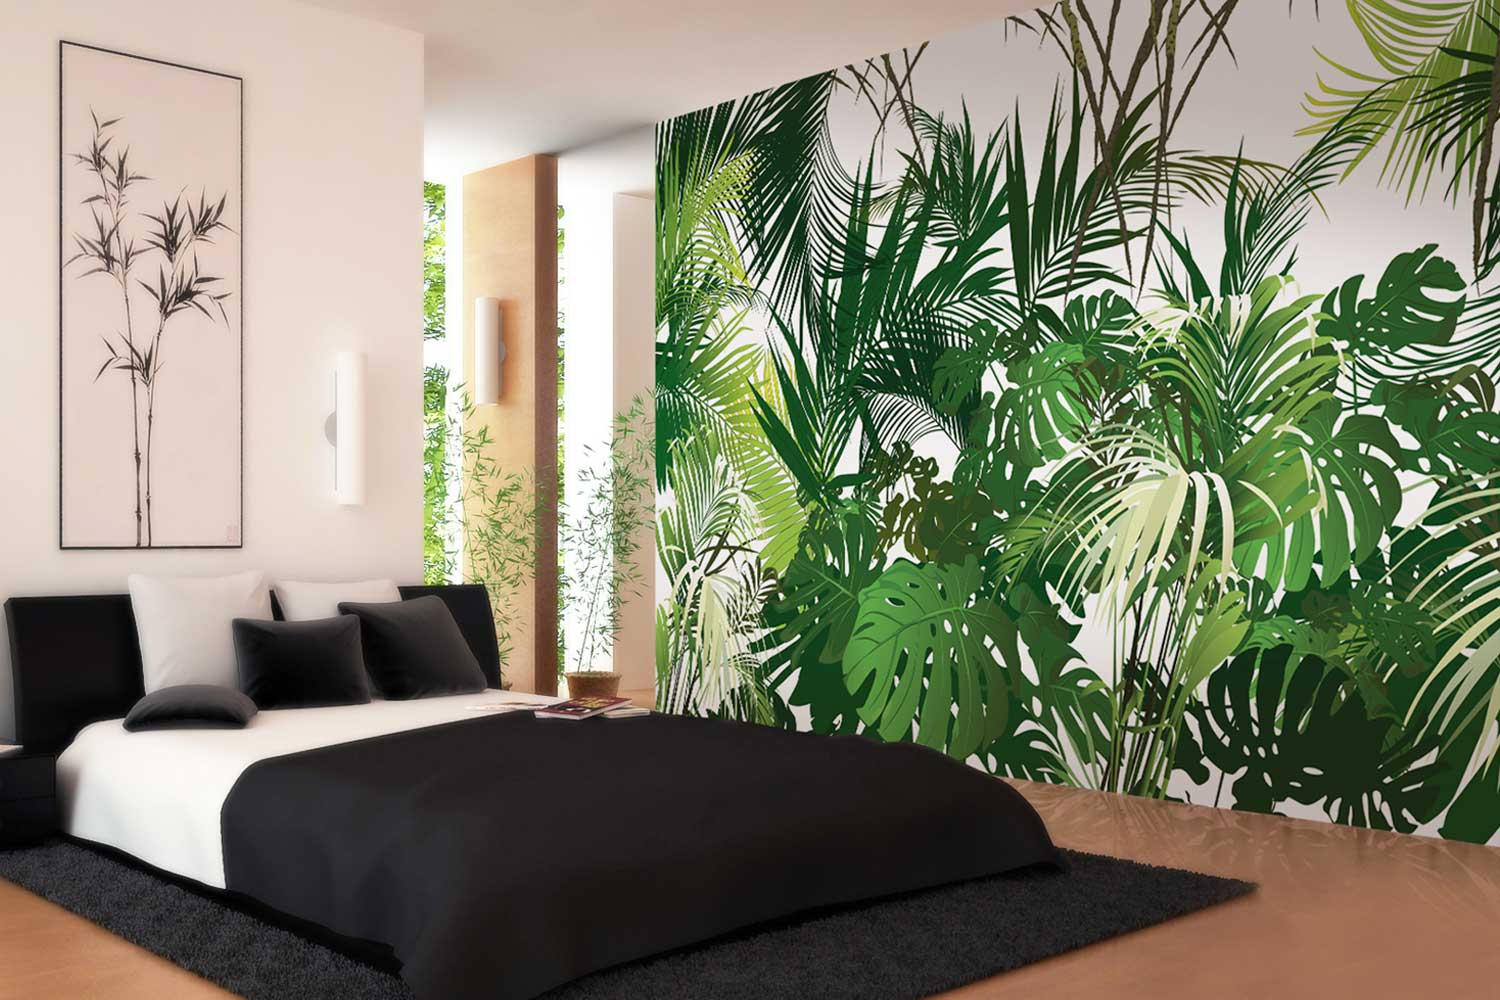 Collection de papier peint Multilés JUNGLE – Réf. JN3288 par LGD01